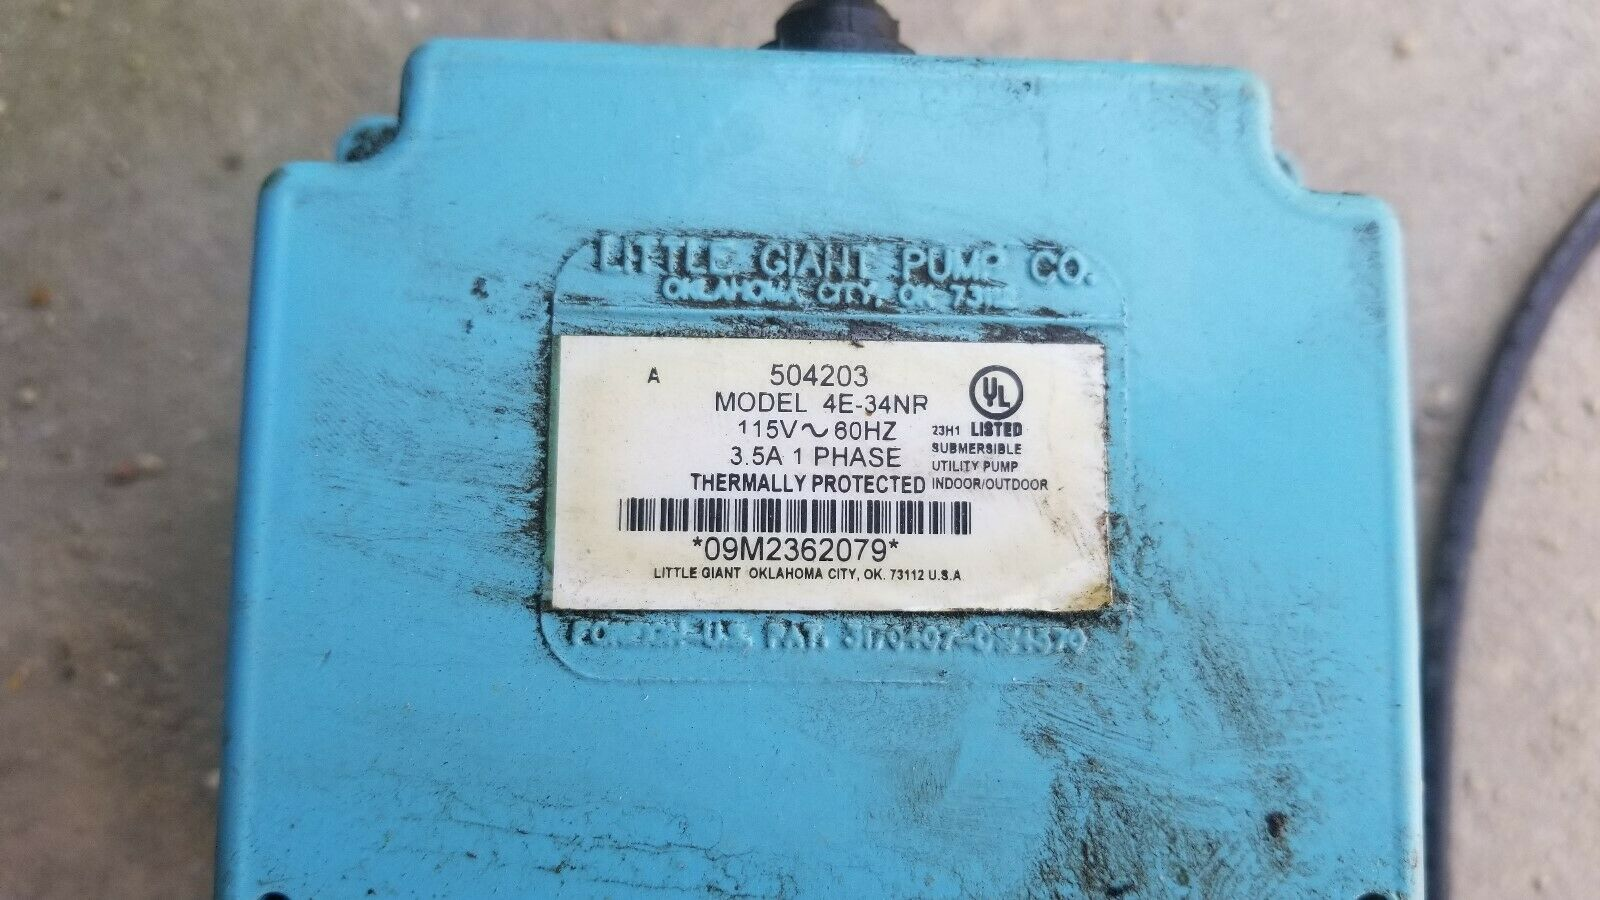 Little Giant Small Submersible Pump 504203-4E-34NR